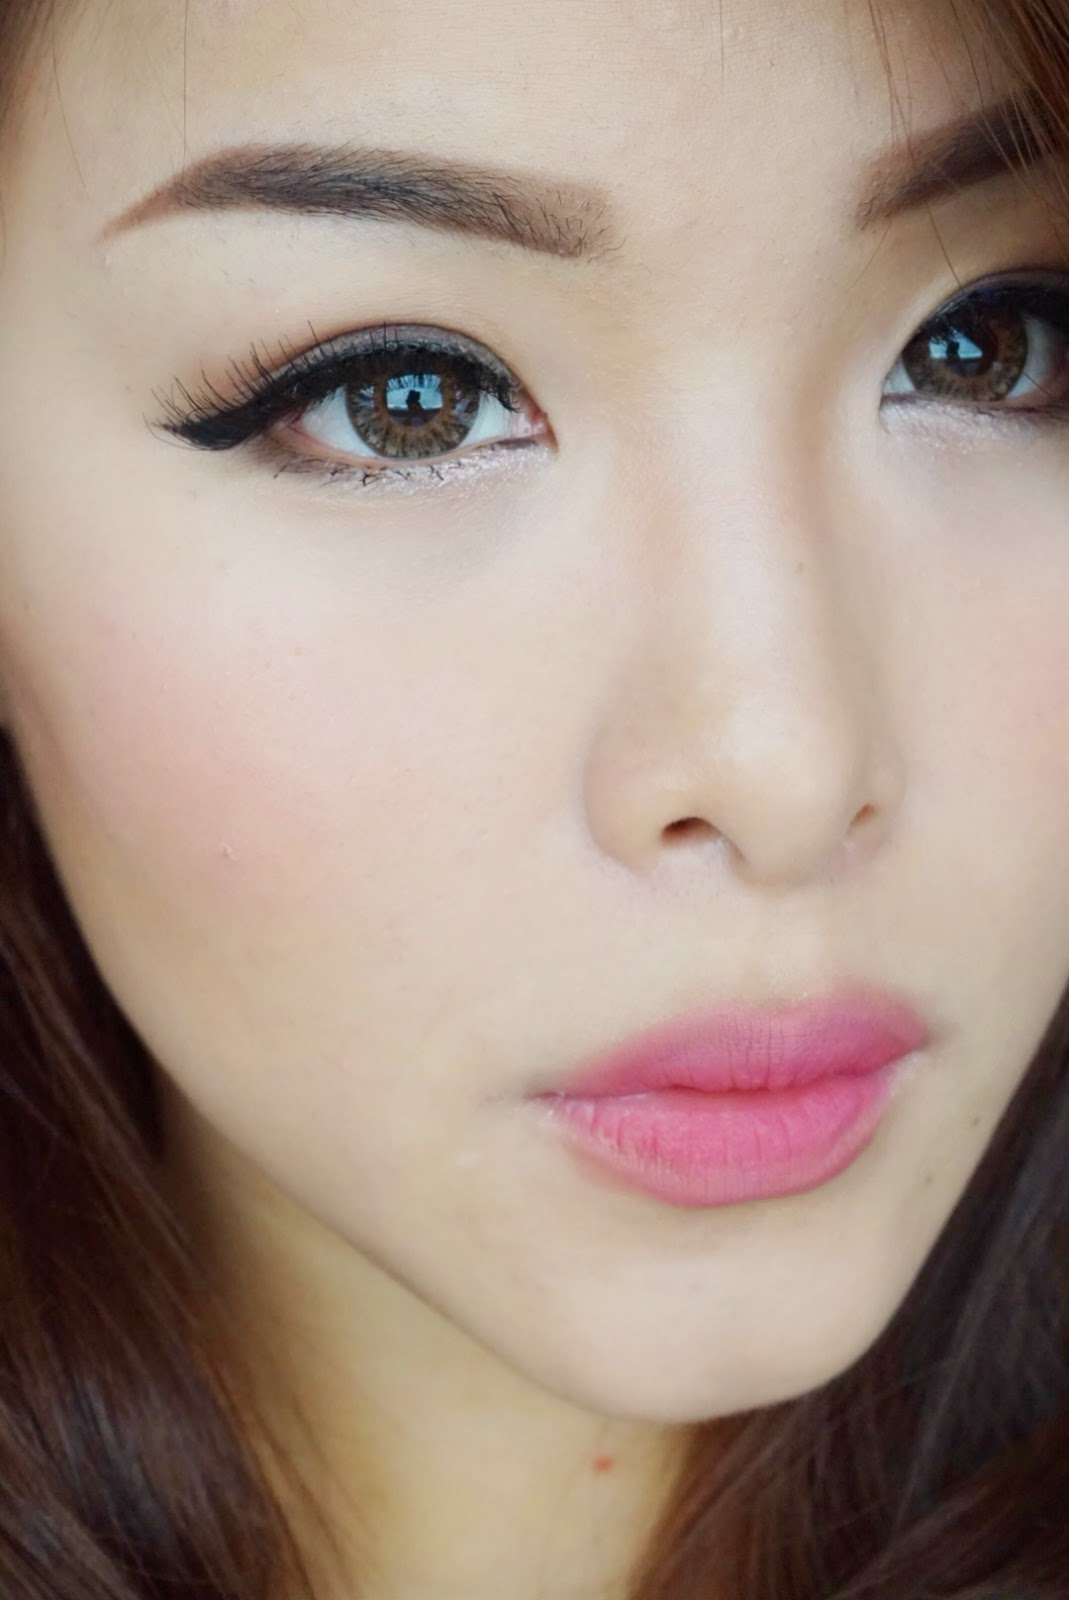 Nyx Lip Lingerie Makes A Great Dupe For The Kylie Jenner: Pandablush By Jeanice Lie: NYX Soft Matte Lip Cream In Sao